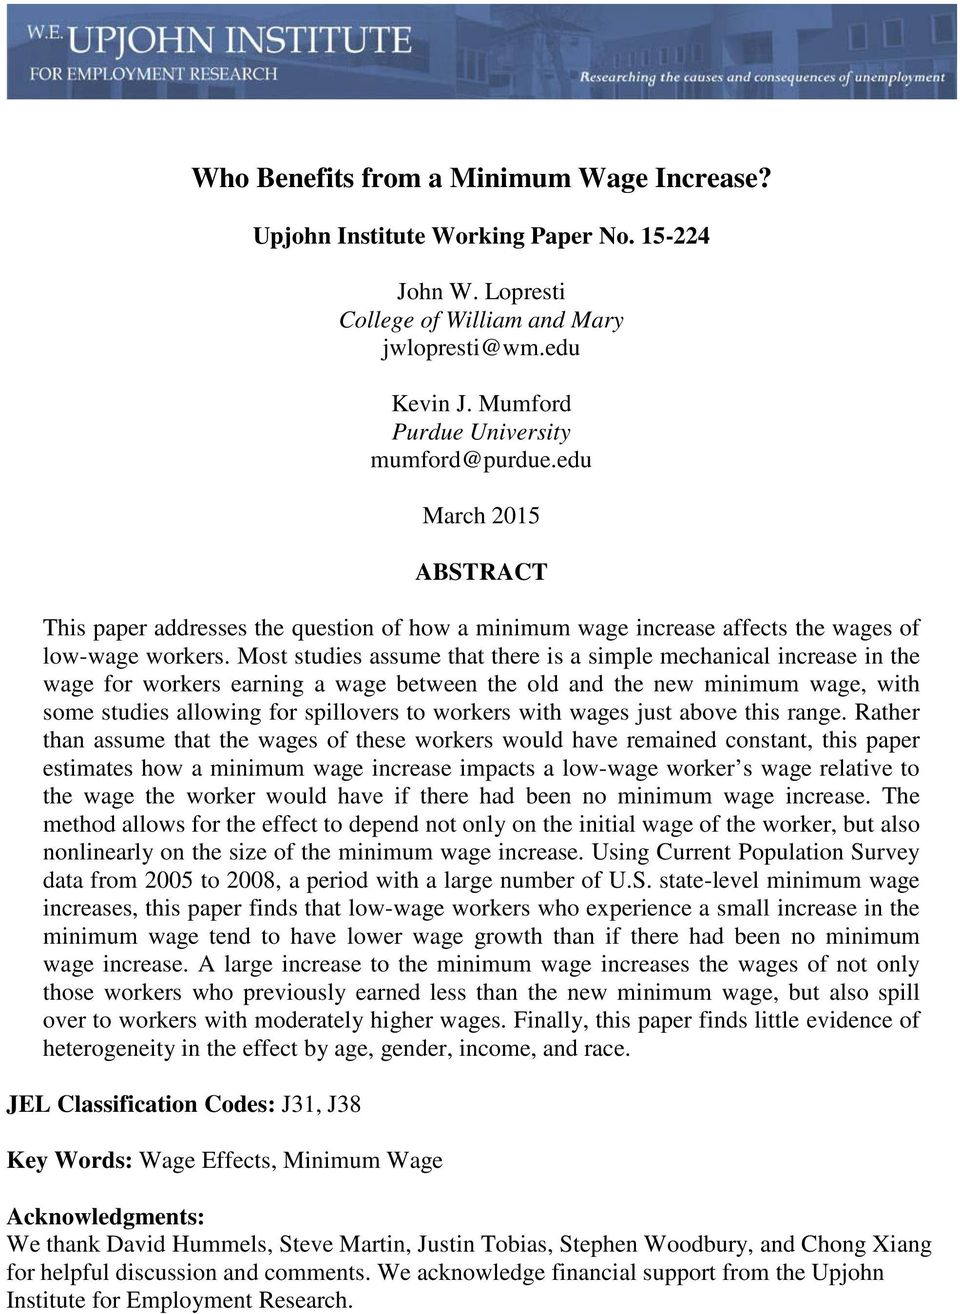 Most studies assume that there is a simple mechanical increase in the wage for workers earning a wage between the old and the new minimum wage, with some studies allowing for spillovers to workers